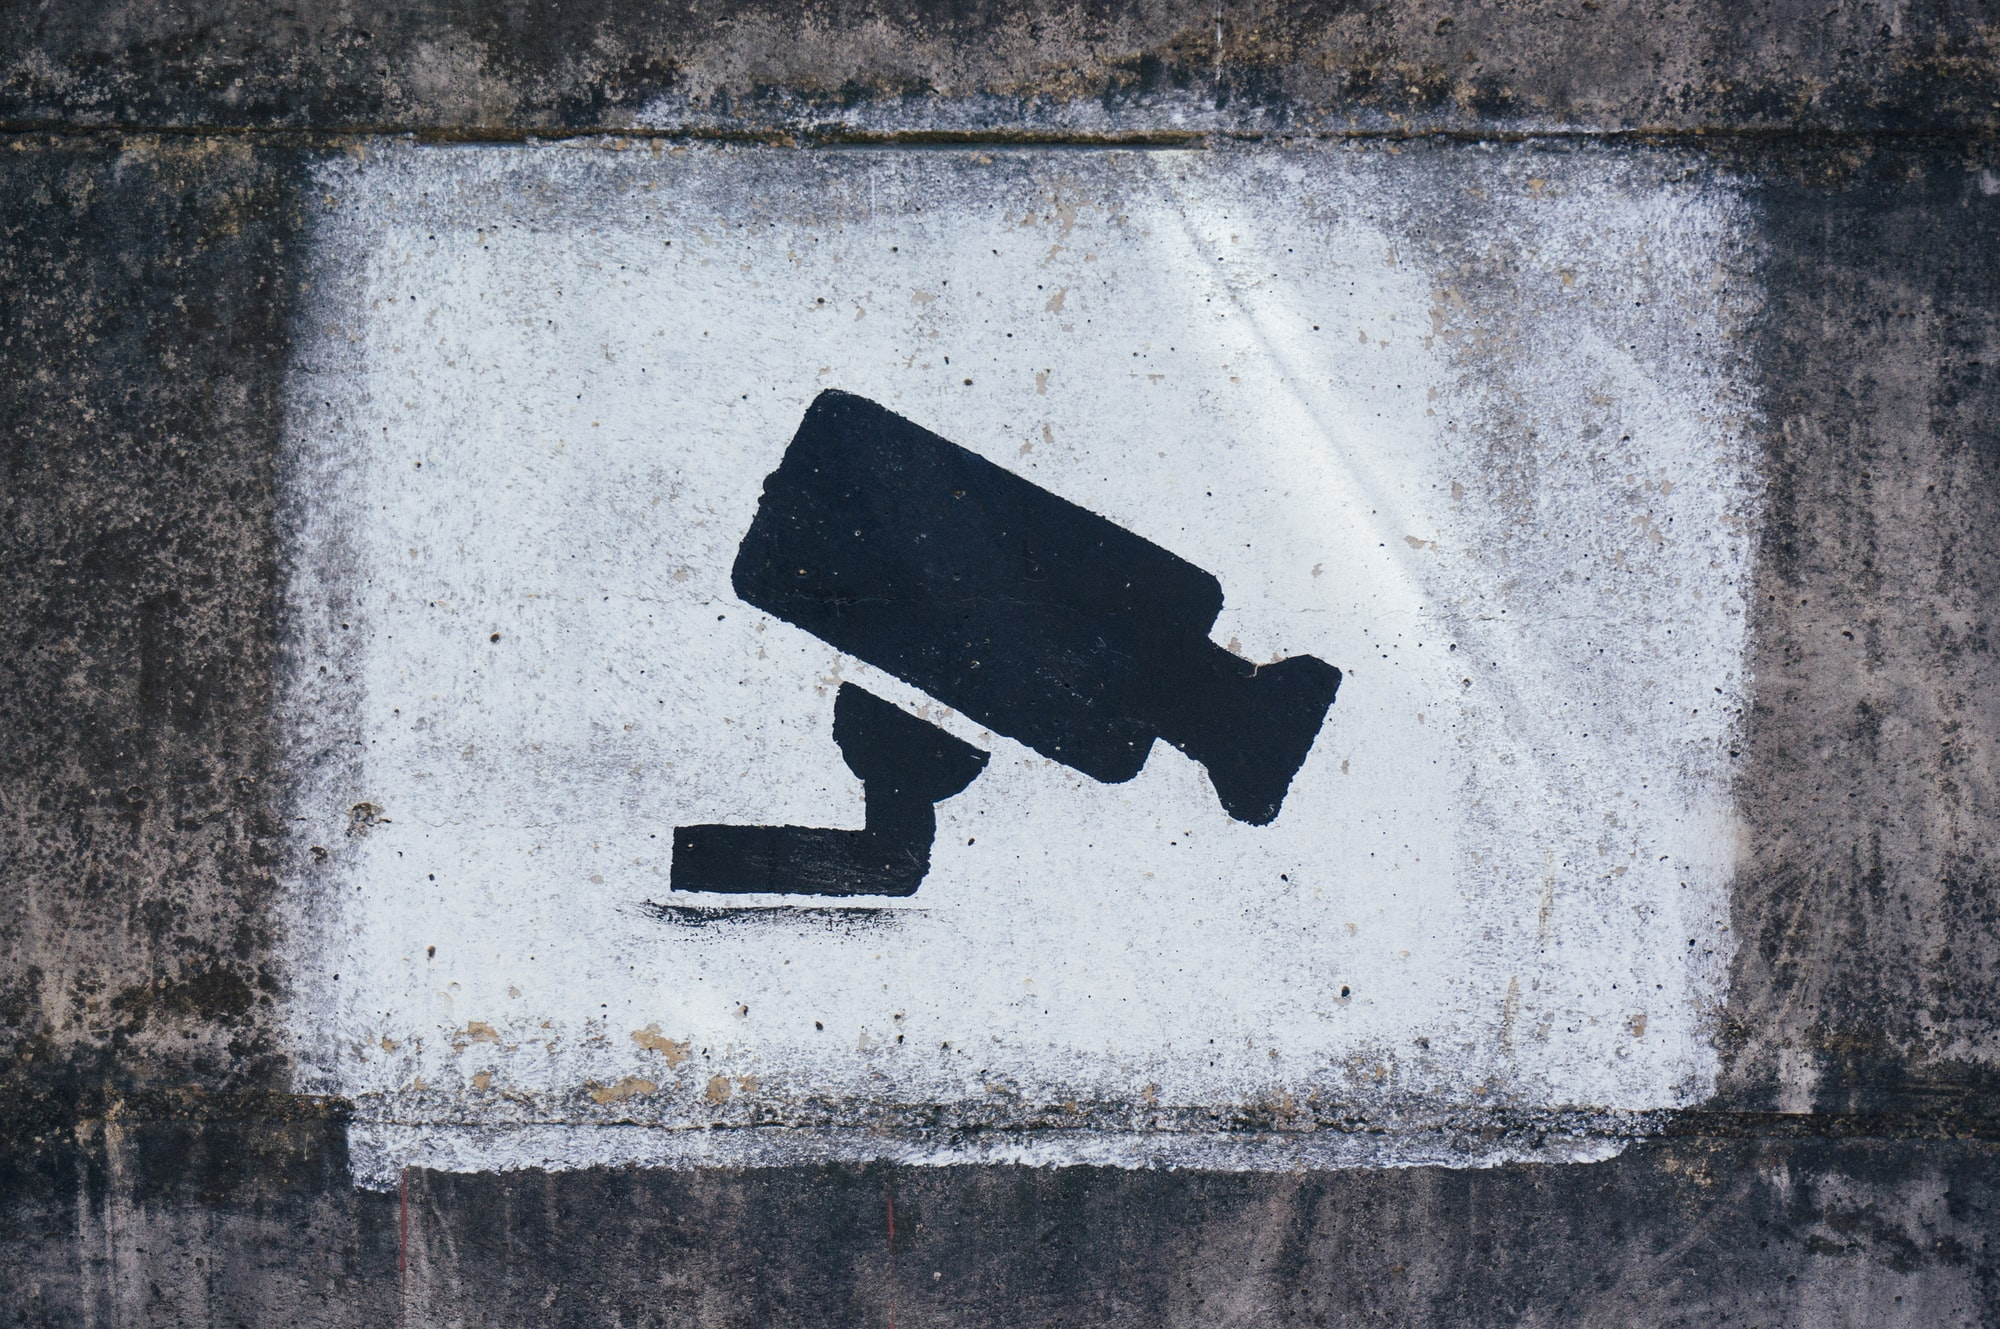 A painting on a wall warning visitors about video surveillance